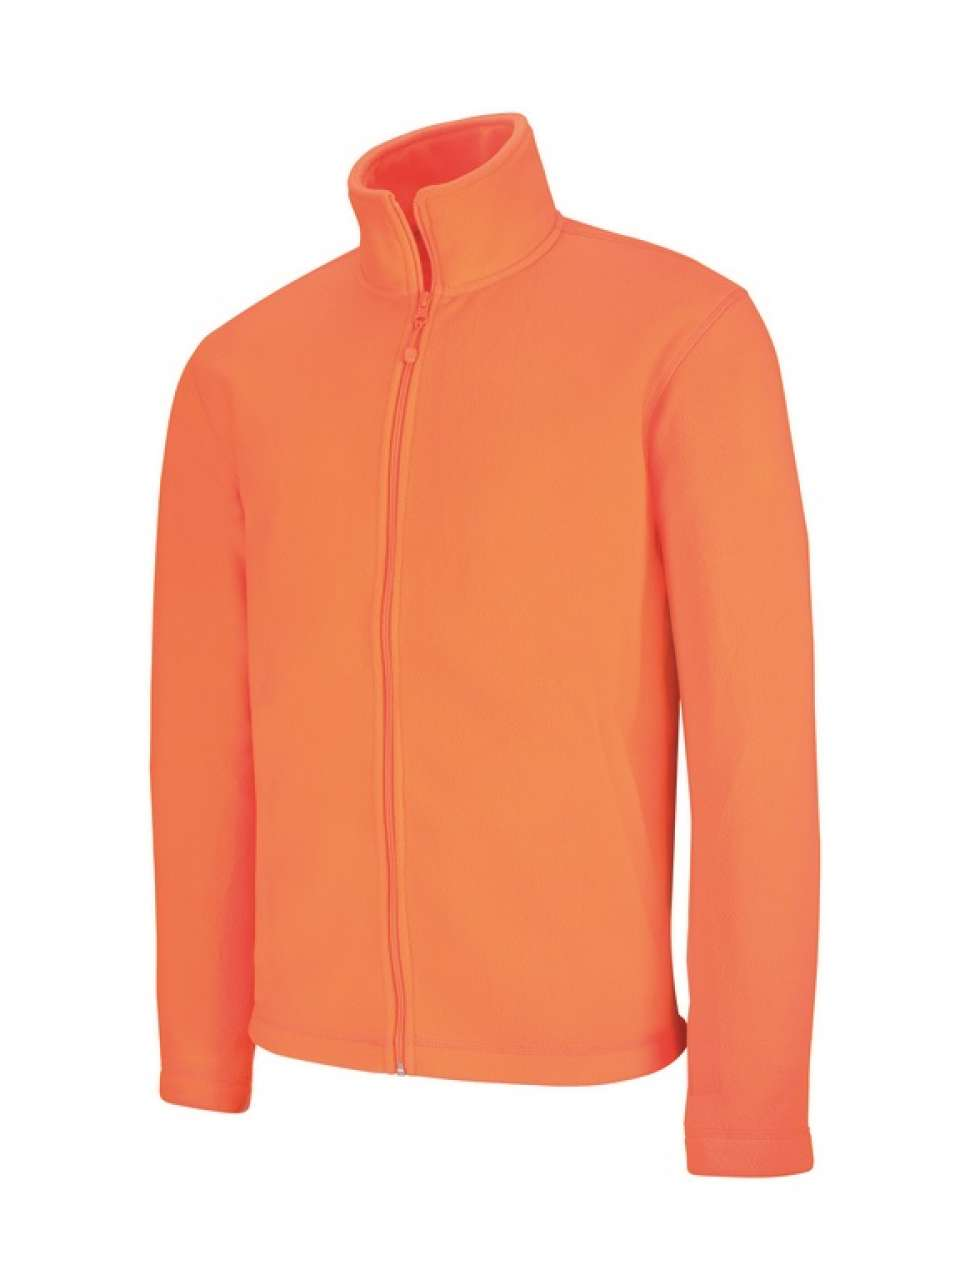 Fleece KA911 fluorescent orange este jachete dama barbatesti polar fleece softshell fas gluga ploaie vant broderie serigrafie termotransfer | Toroadv.ro